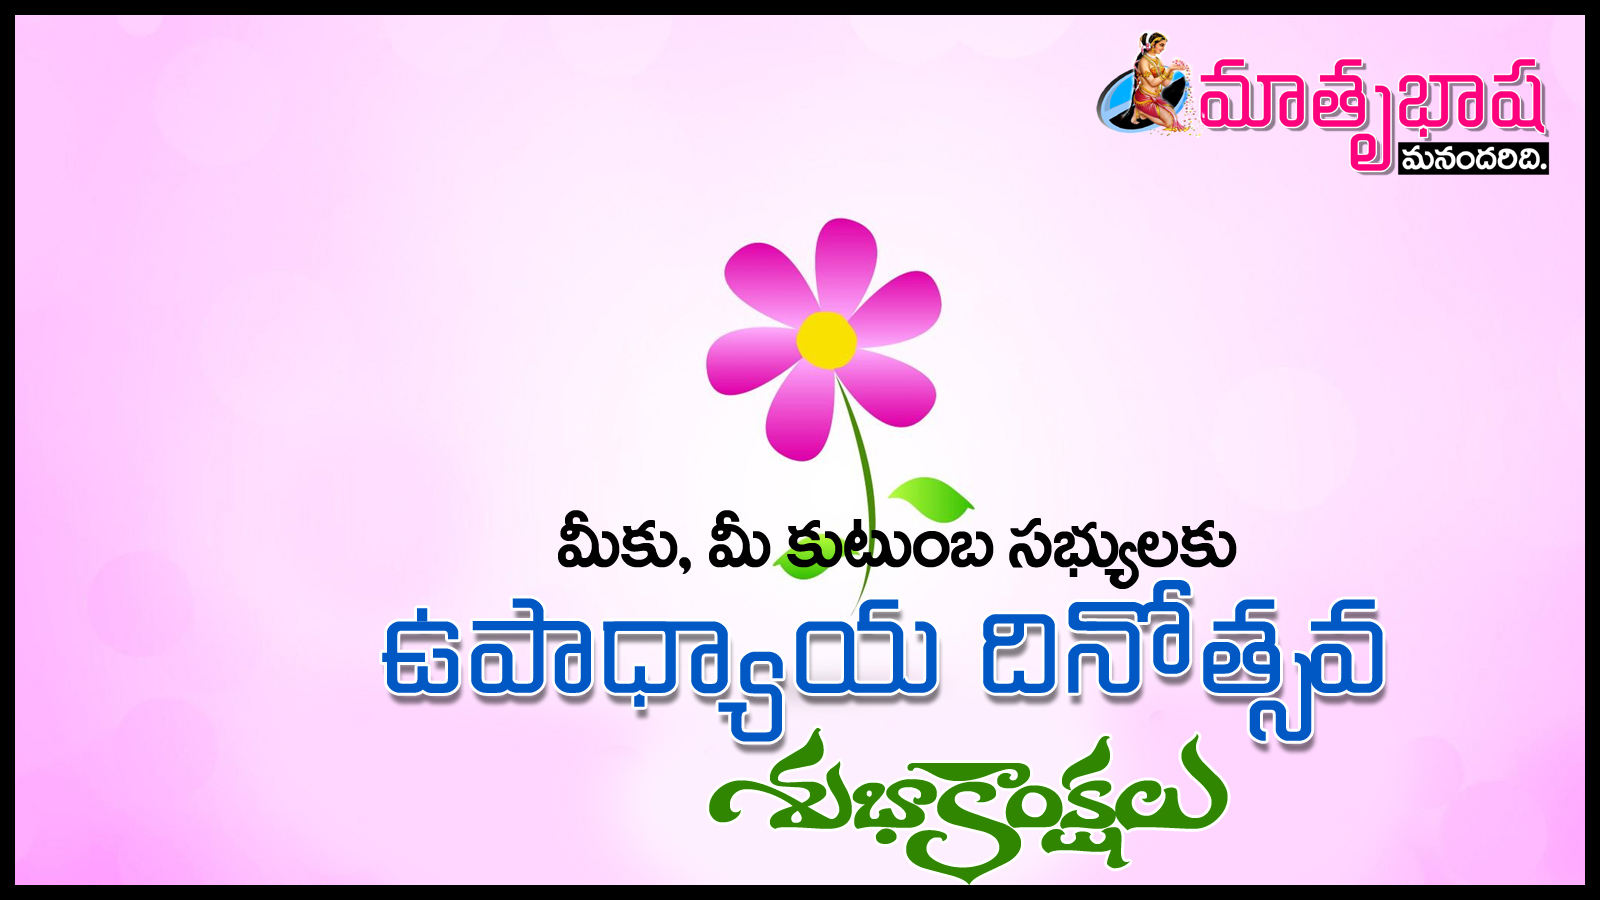 Happy teachers day quotes and images in telugu maatrubasha happy teachers day teachers day 2015 teachers day speech teachers day quotes kristyandbryce Choice Image